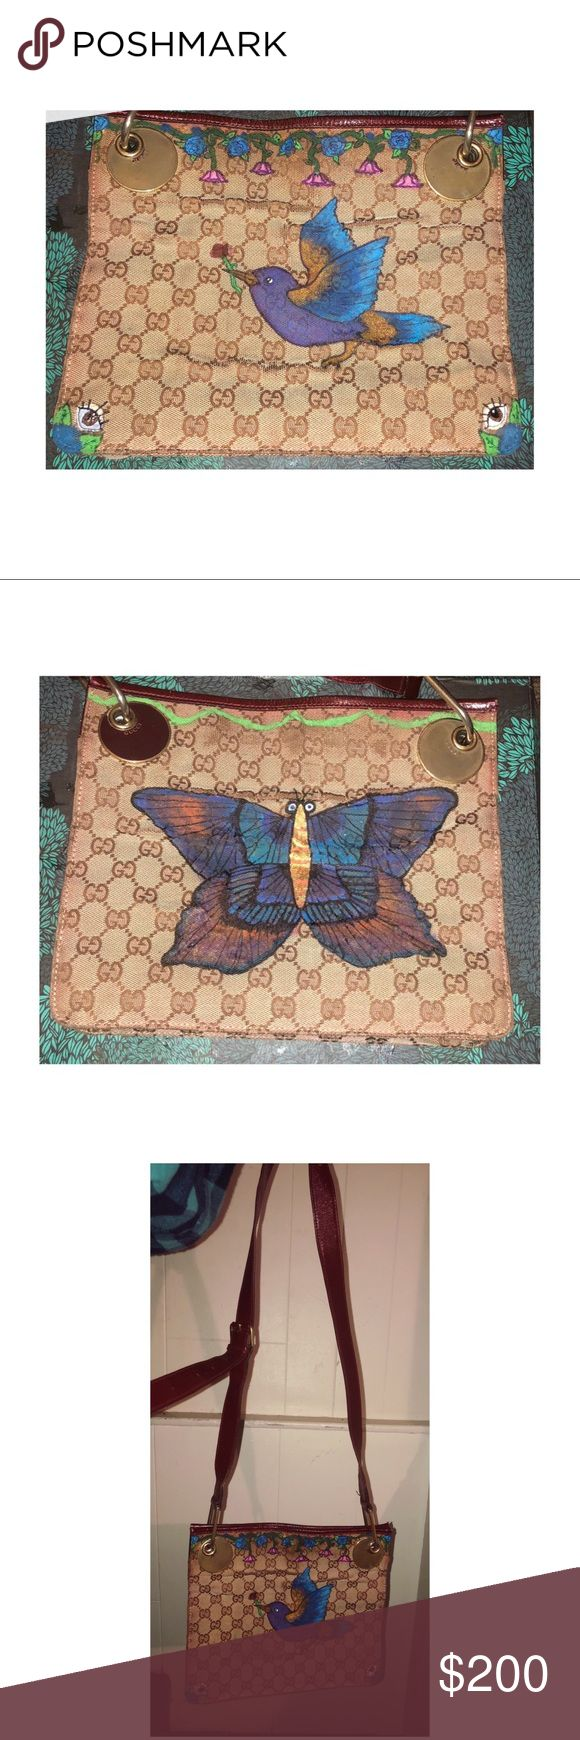 🦋 Butterfly Messenger Bag 🦋 Authentic preloved Gucci purse featuring original Magical Garden artwork ✨ This bag is preowned and does suffer from some wear and tear. I believe this bag has been in storage for awhile.. there is a slight kink on the strap, as well as permanent wrinkles on both sides. This is a crossbody/messenger purse ✨ Gucci Bags Crossbody Bags